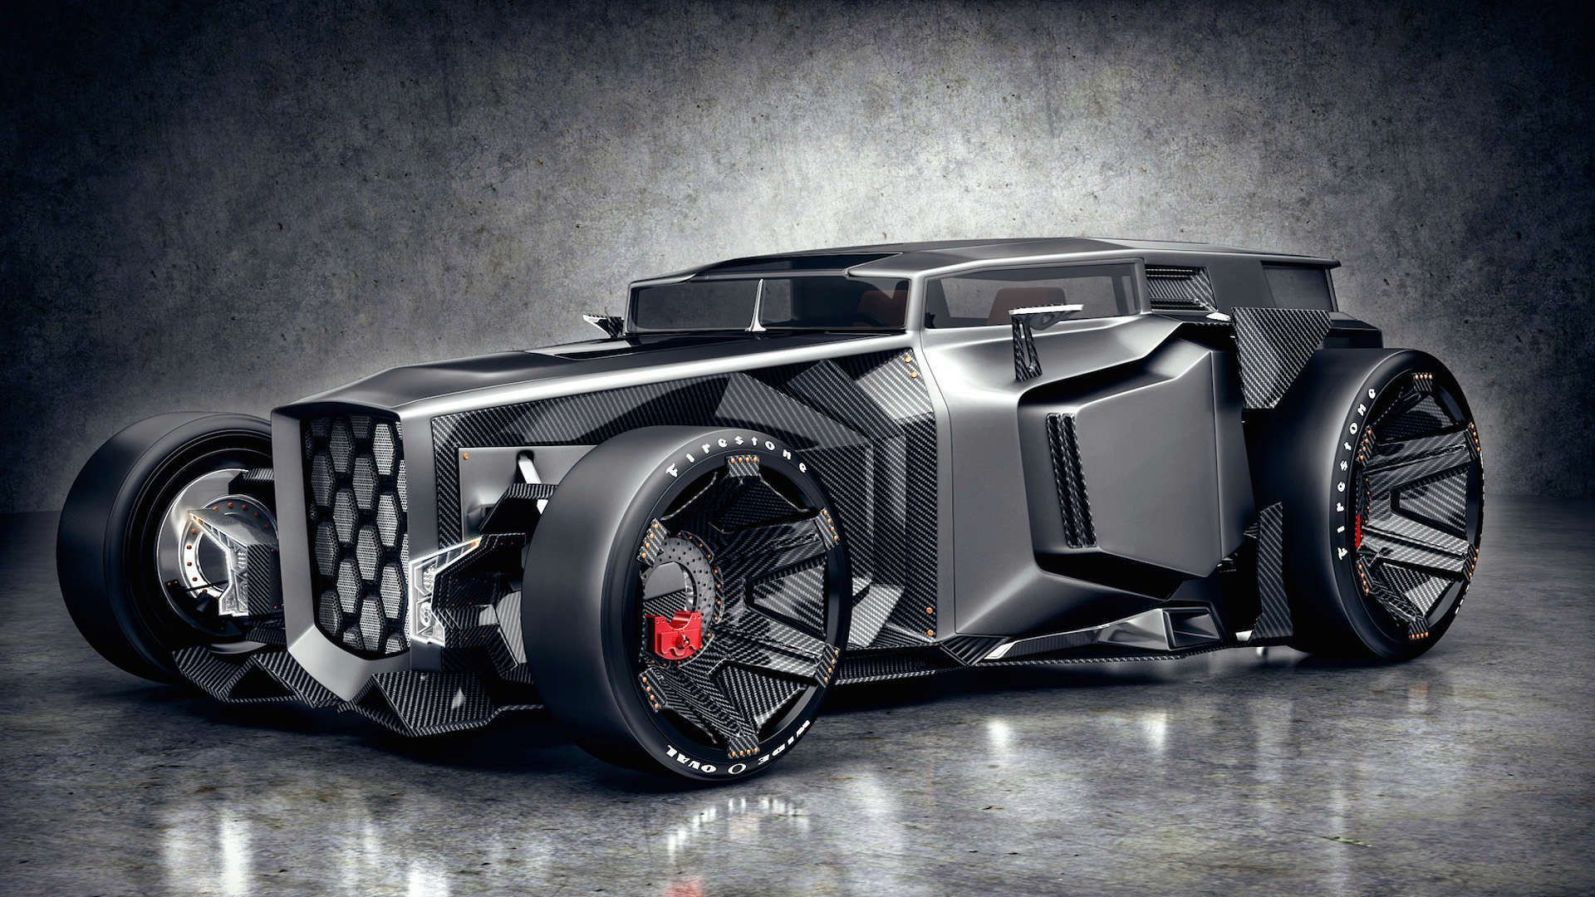 Supercar Lamborghini Hot Rod - Original image